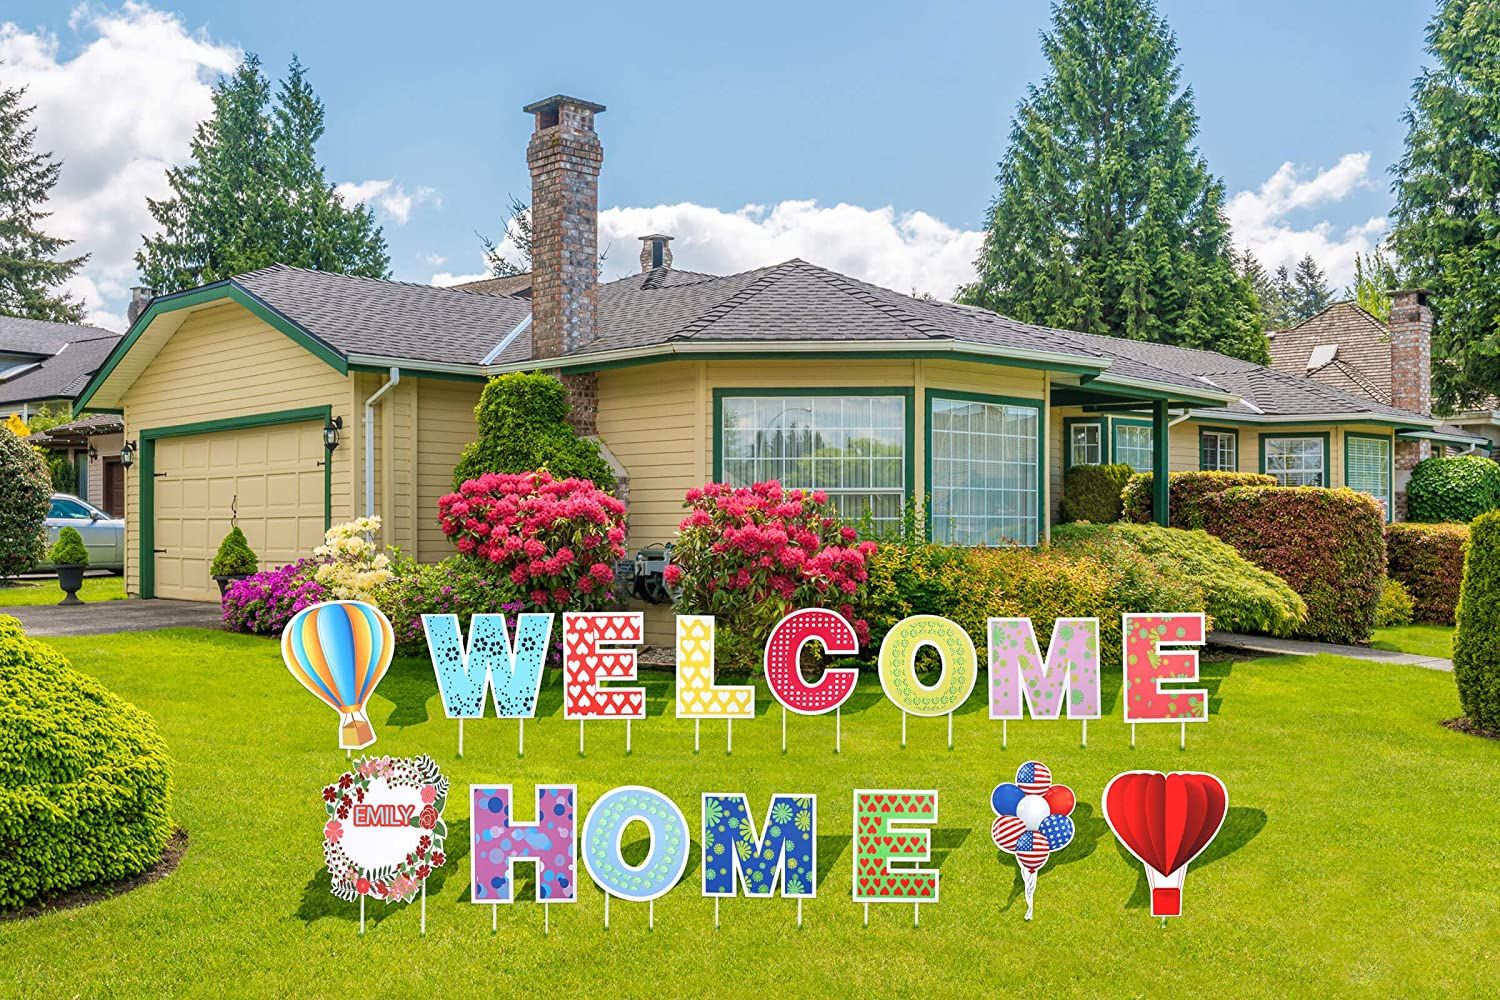 "JILLSKY Welcome Home Yard Signs with Stakes Support Custom Themes – 16.7"" Big Size Welcome Back Home Yard Sign Outdoor Lawn Decorations - Set of 15"